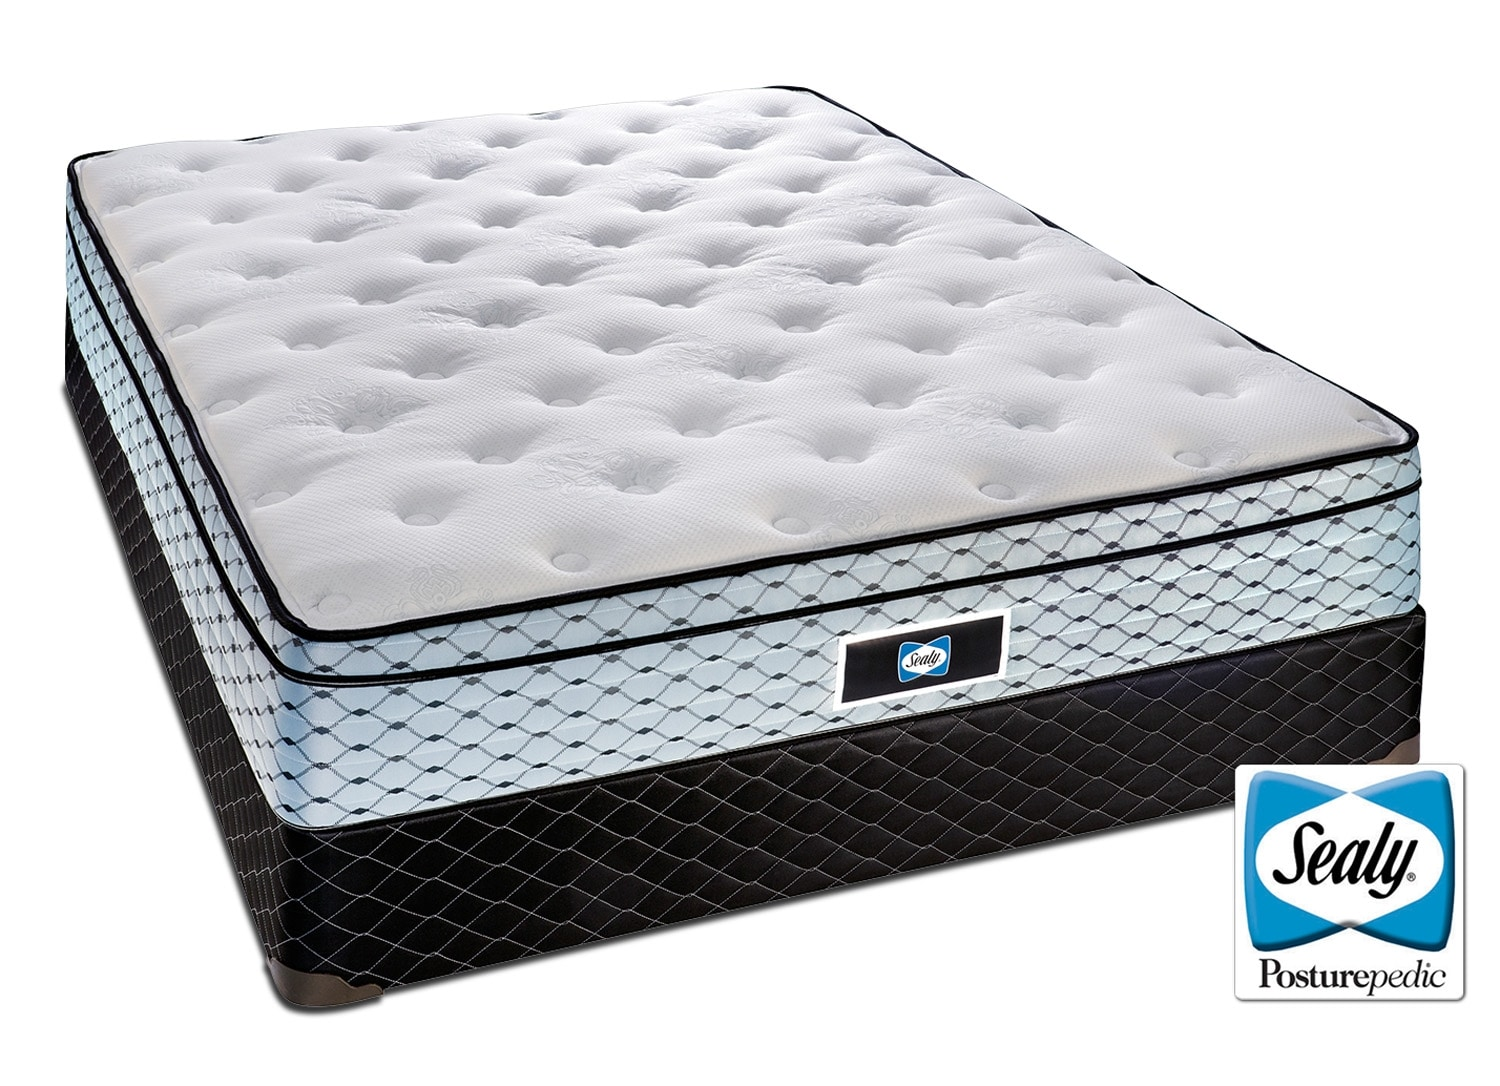 Mattresses and Bedding - Sealy Halo Cushion Firm Full Mattress/Boxspring Set